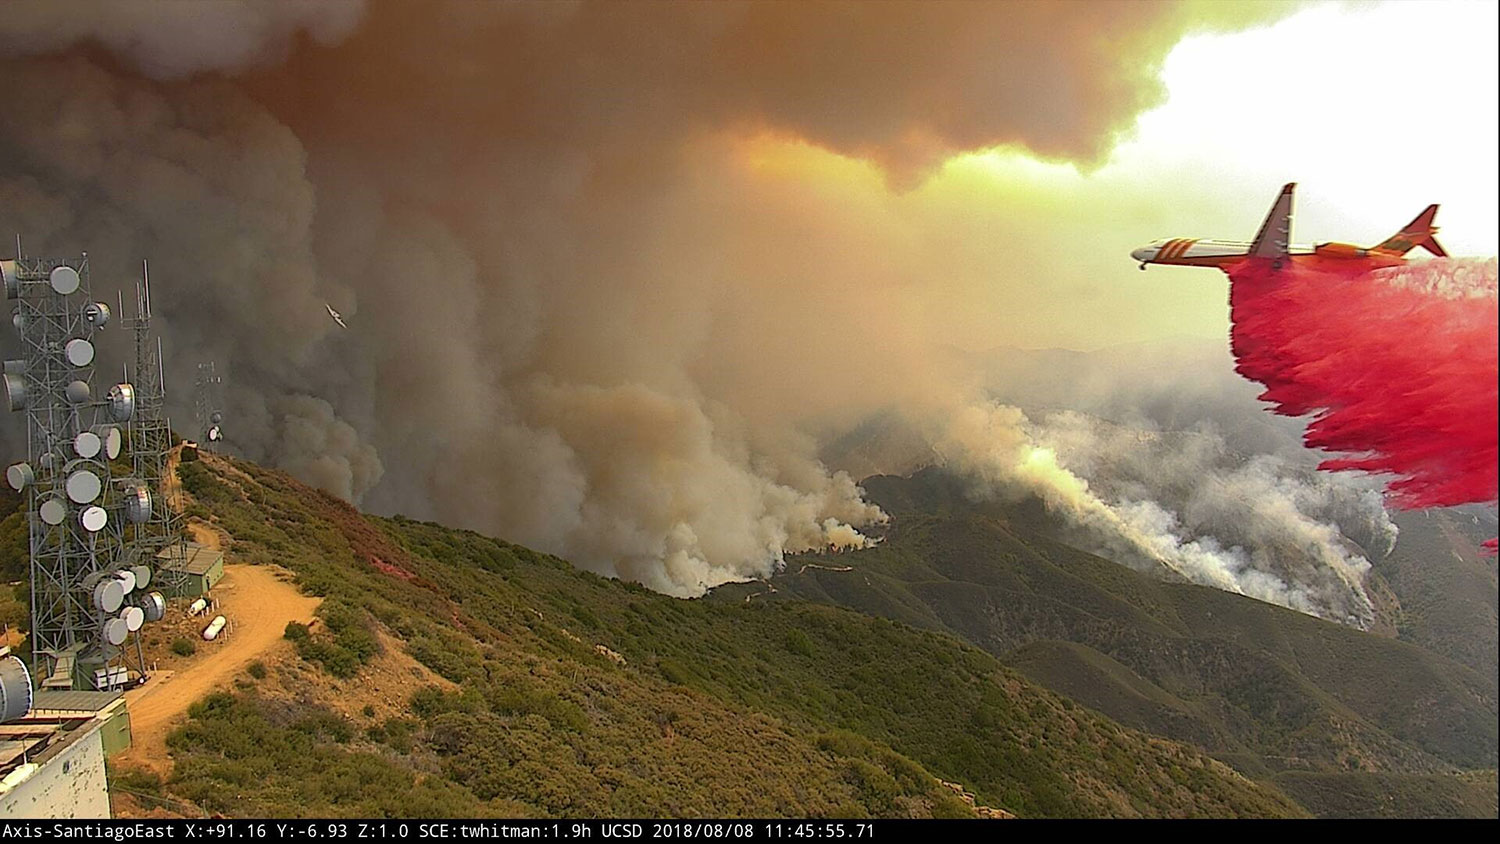 fire airplane over California mountains